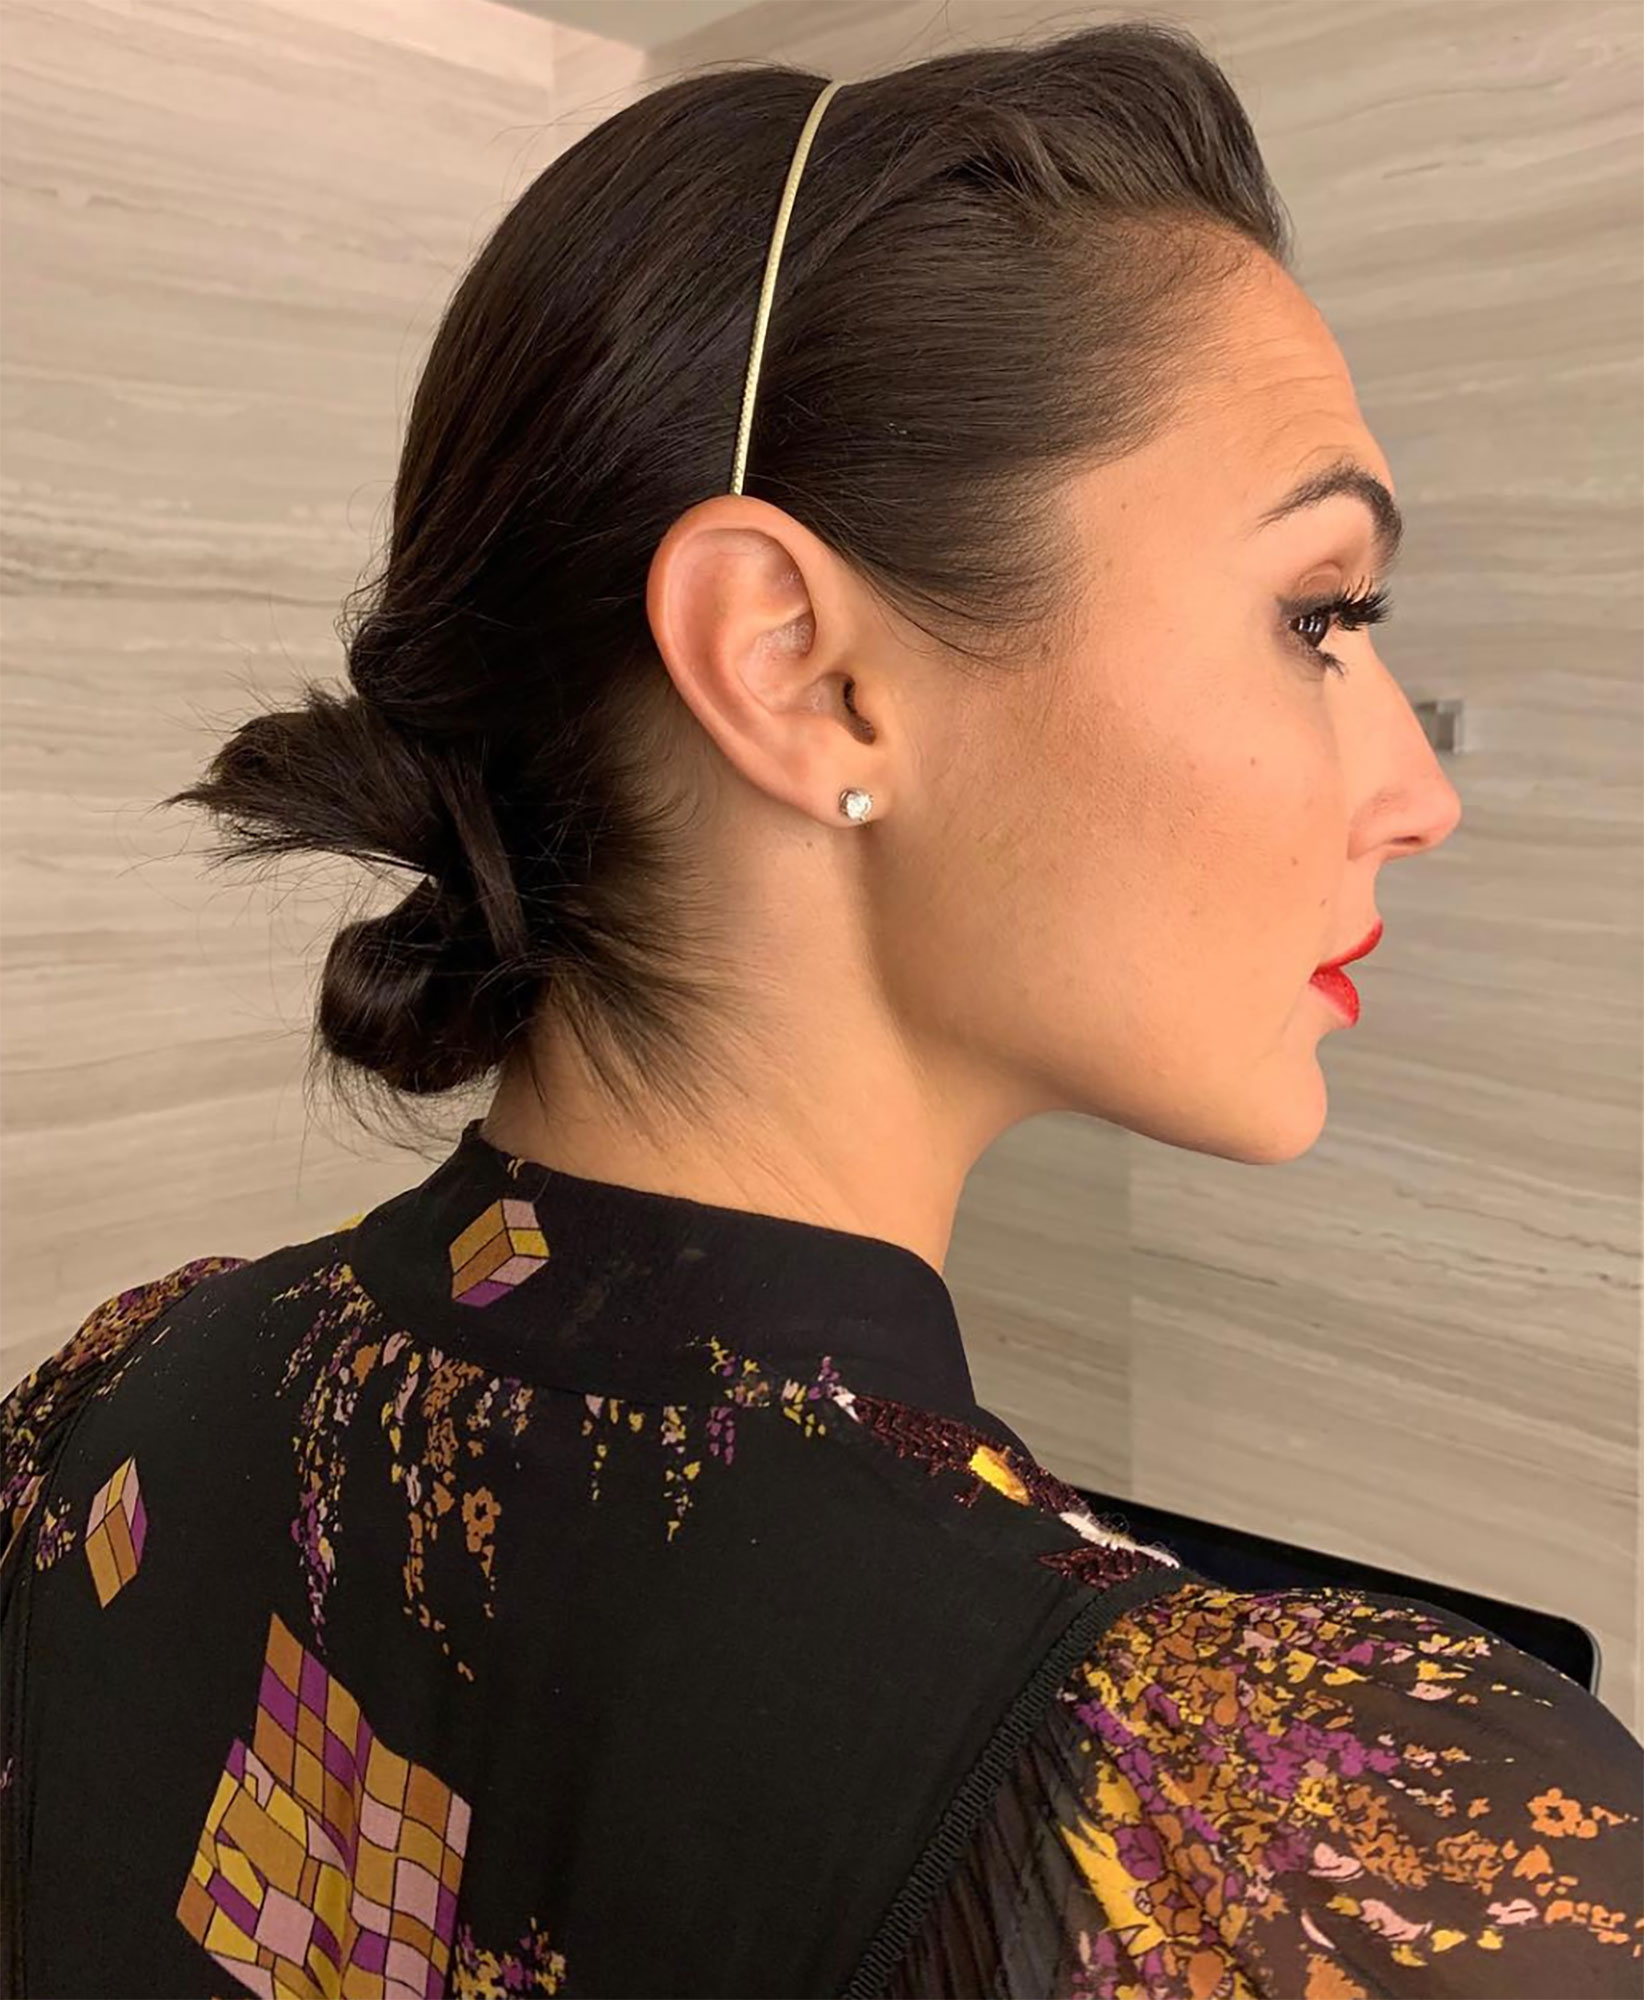 """Gal Gadot's Headband makeup red lips - Avoid sweaty strands in peak desert heat by securing them off your face with a headband. Celeb hairstylist Renato Campora added a skinny gold accessory to the cute """"#lowknot"""" look her created for the Wonder Woman star on Tuesday, April 9."""